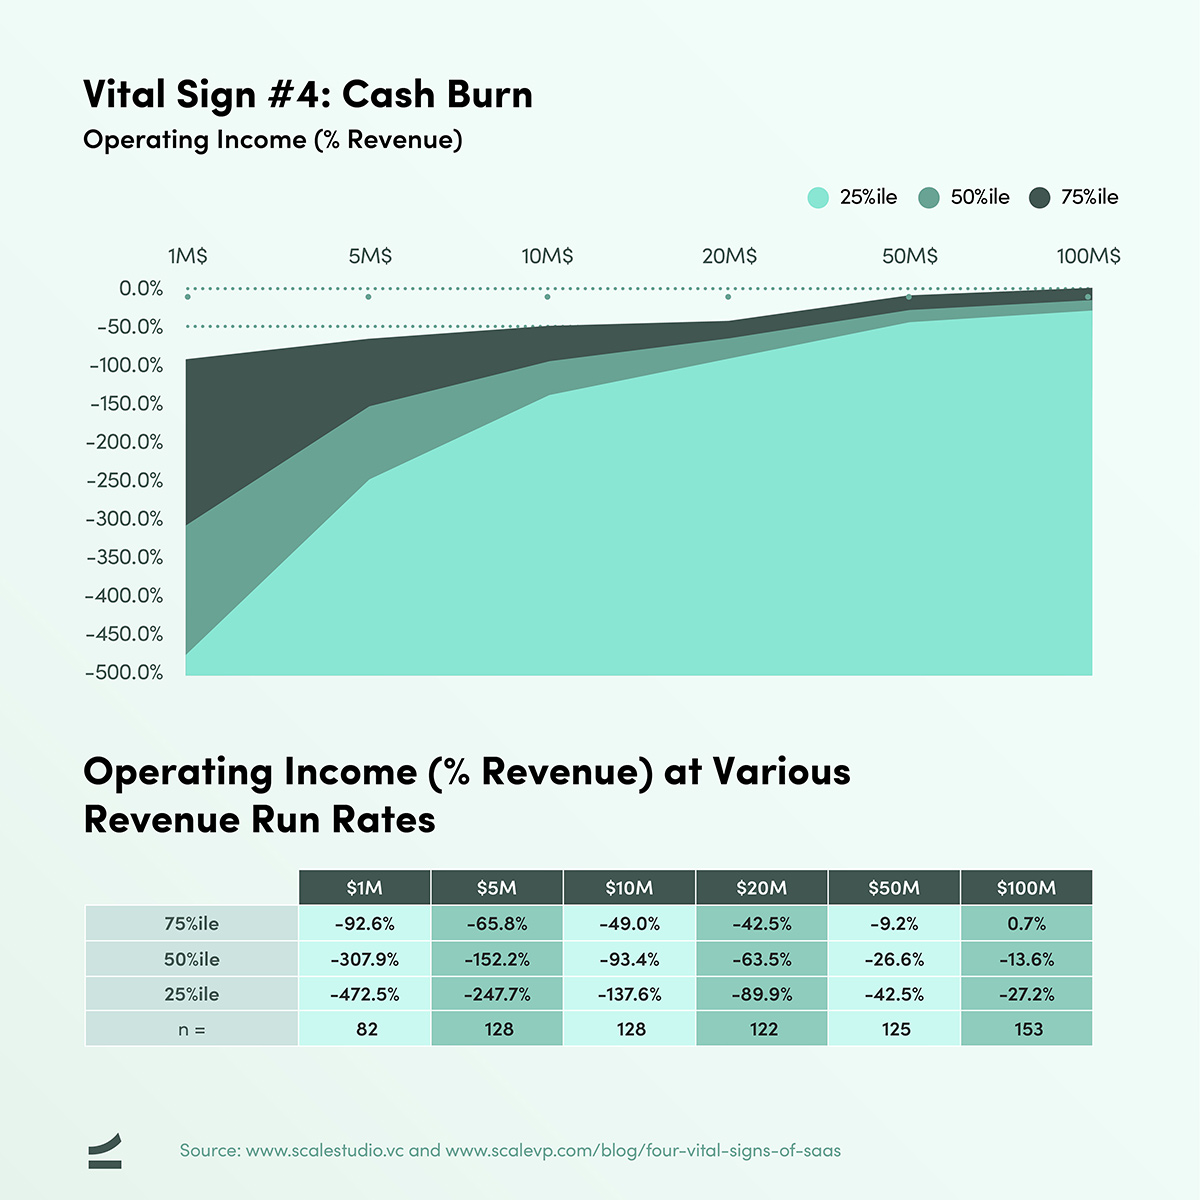 Four Vital Signs of SaaS - Operating Income - Cash Burn - chart and table